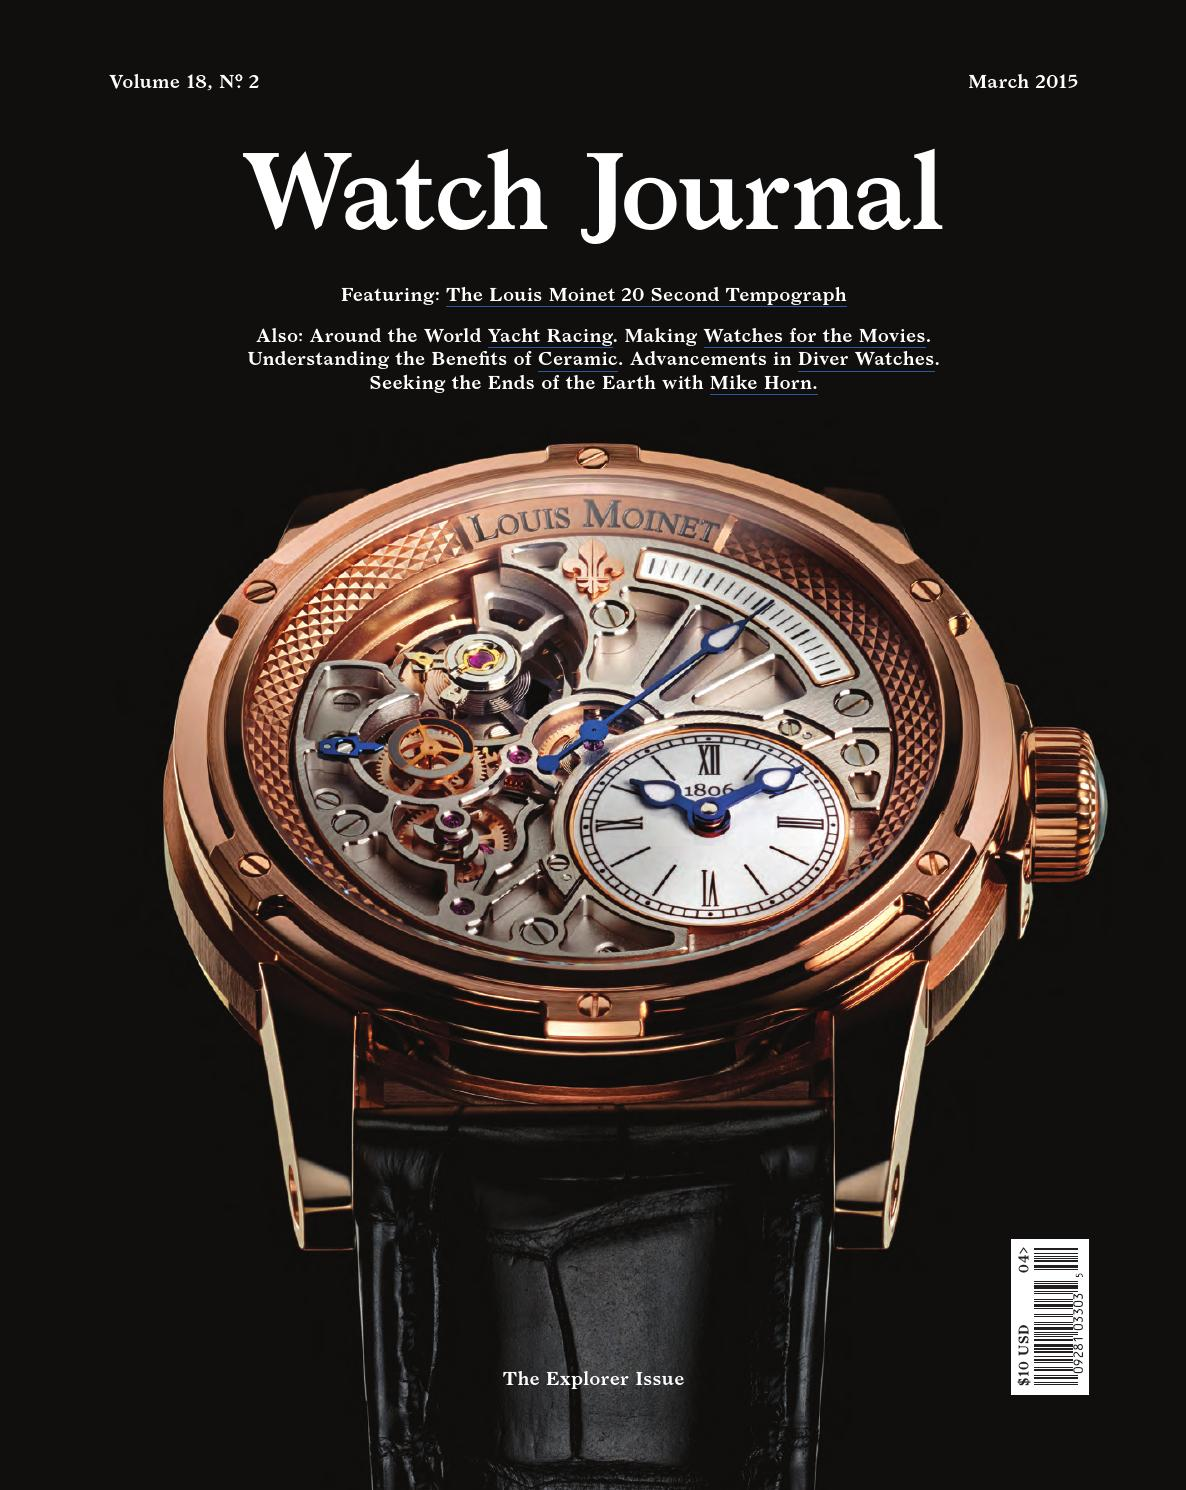 d3d7a7ff6c7 Watch Journal March 2015 by Watch Journal - issuu